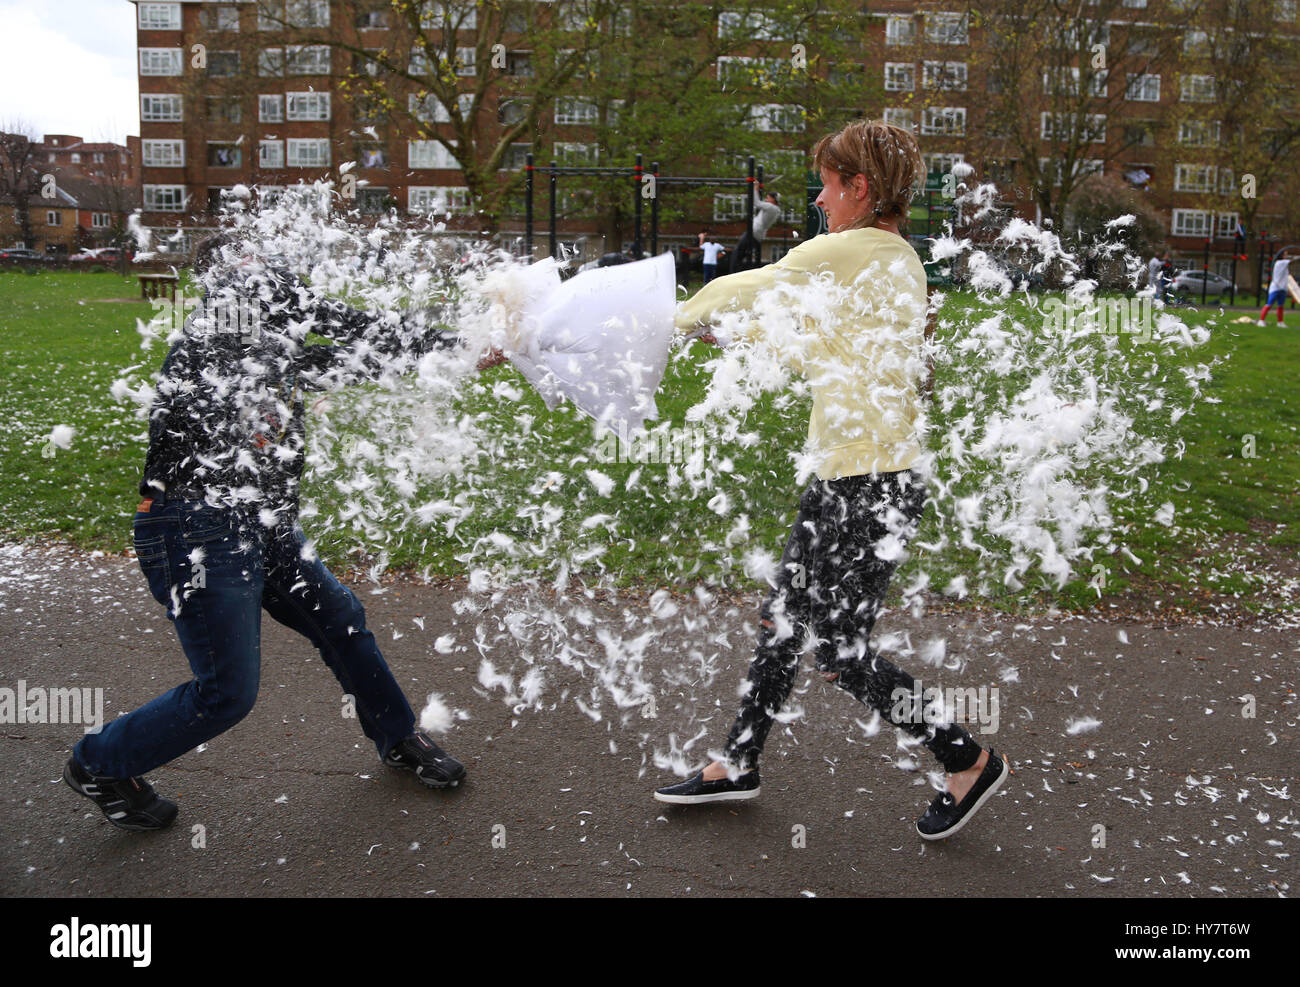 London, UK. 01st Apr, 2017. People pillow-fighting on World Pillow Fight Day, in Kennington Park, London, UK, on - Stock Image